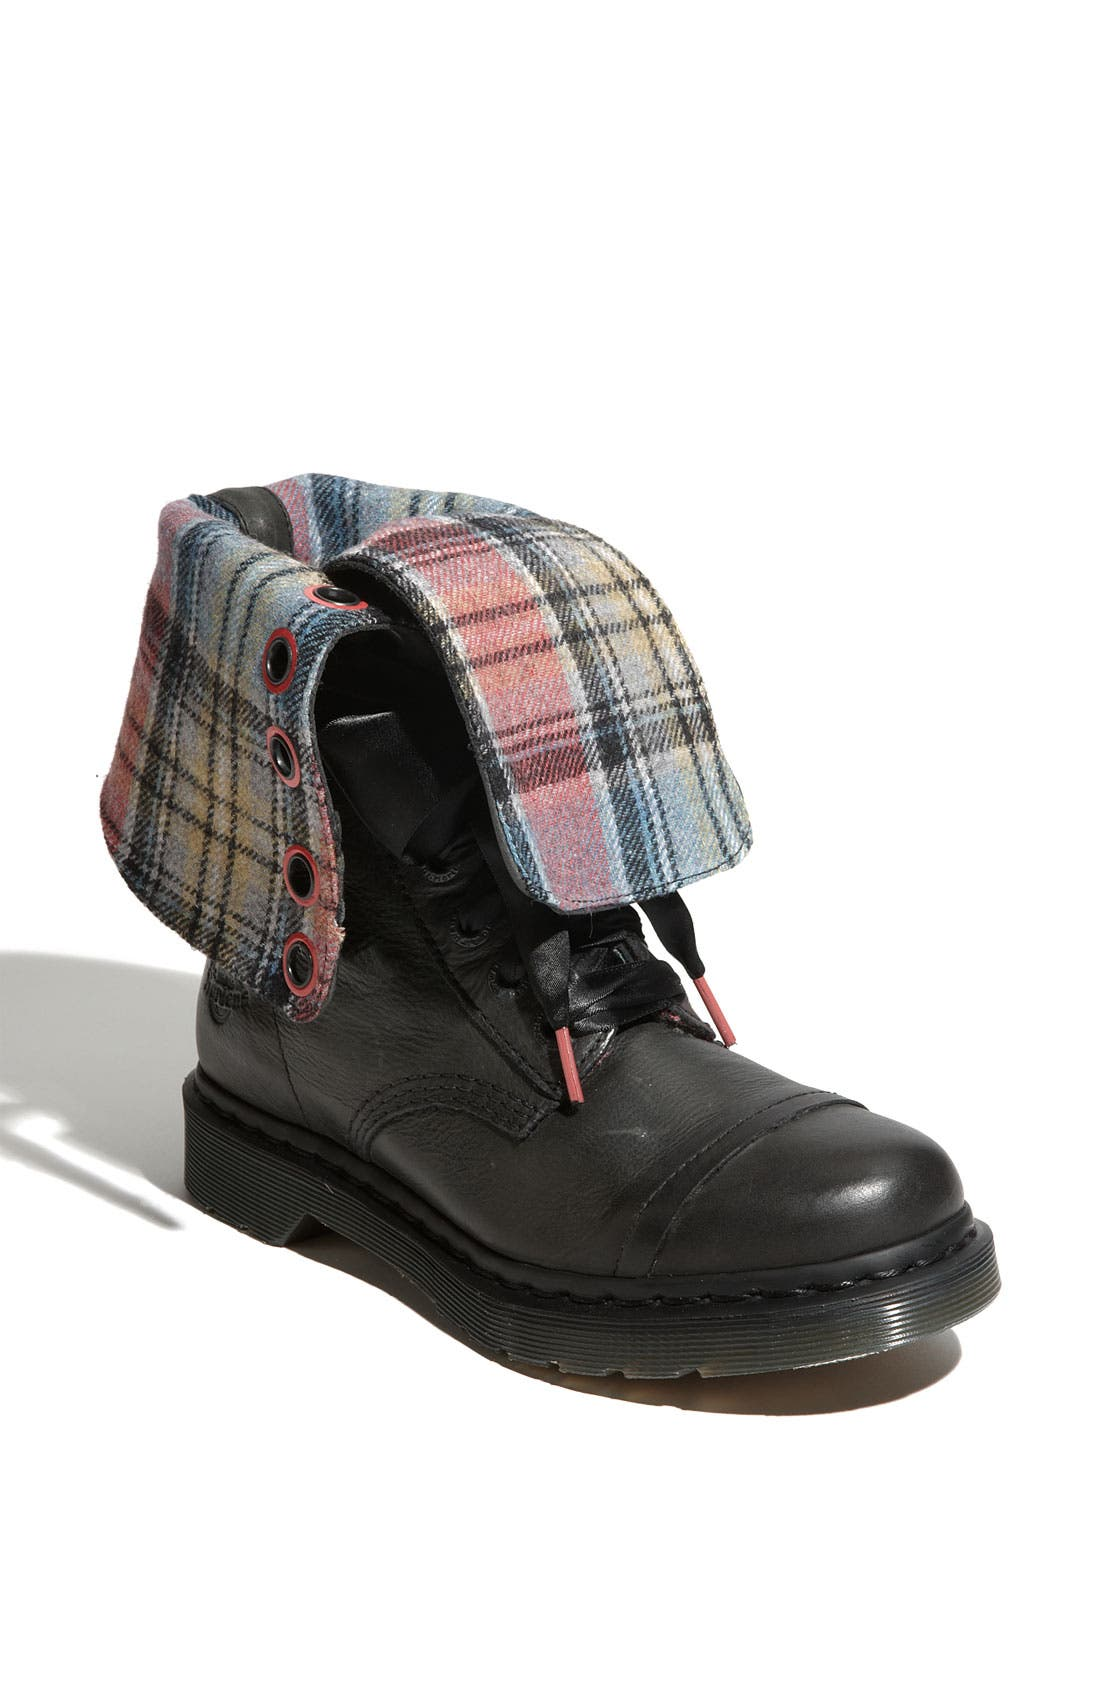 Main Image - Dr. Martens 'Triumph 1914' Lace-Up Boot